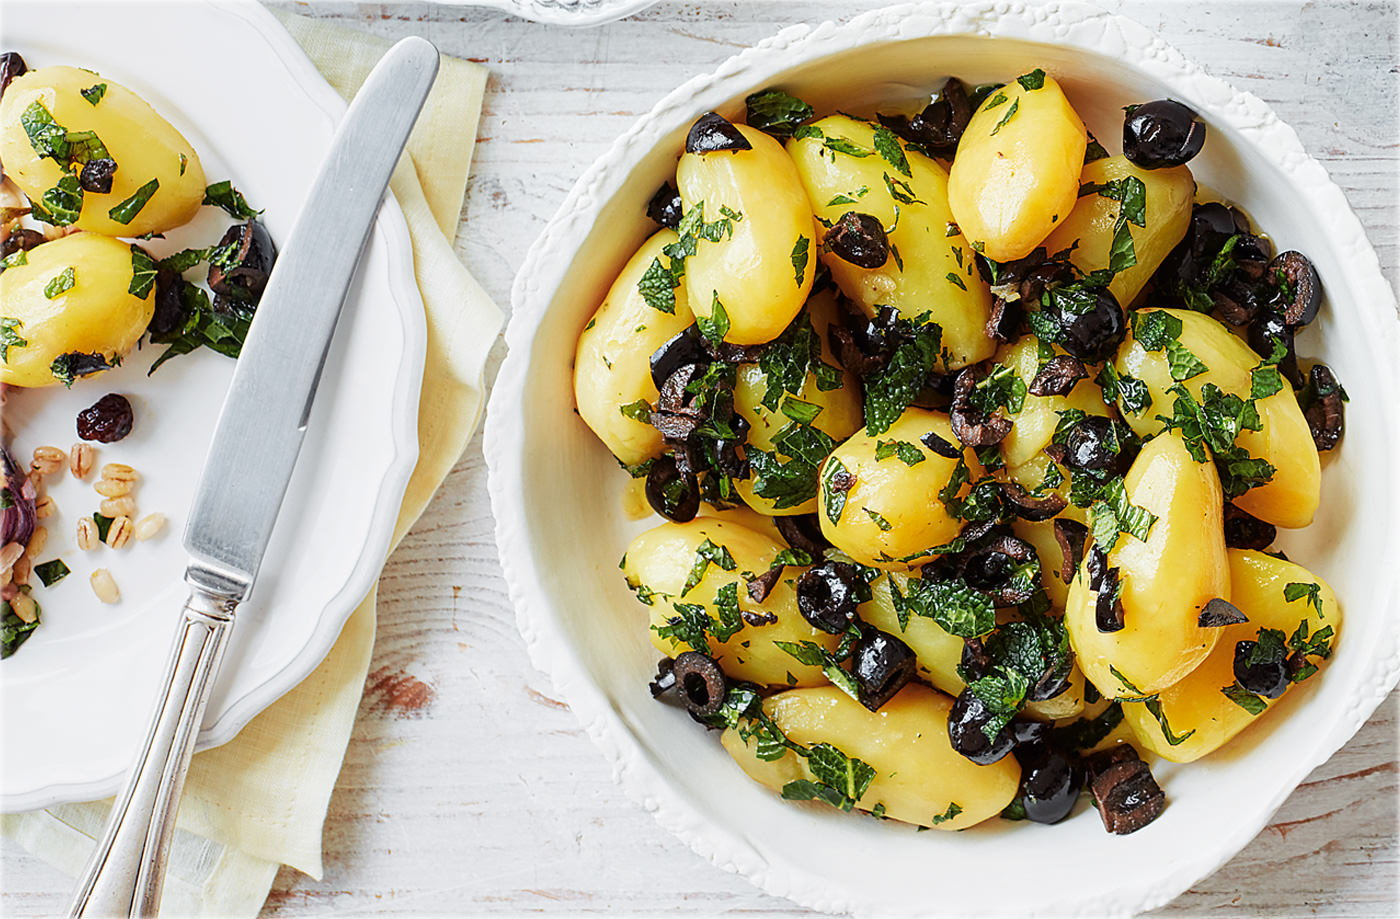 New potatoes with mint oil and black olives recipe